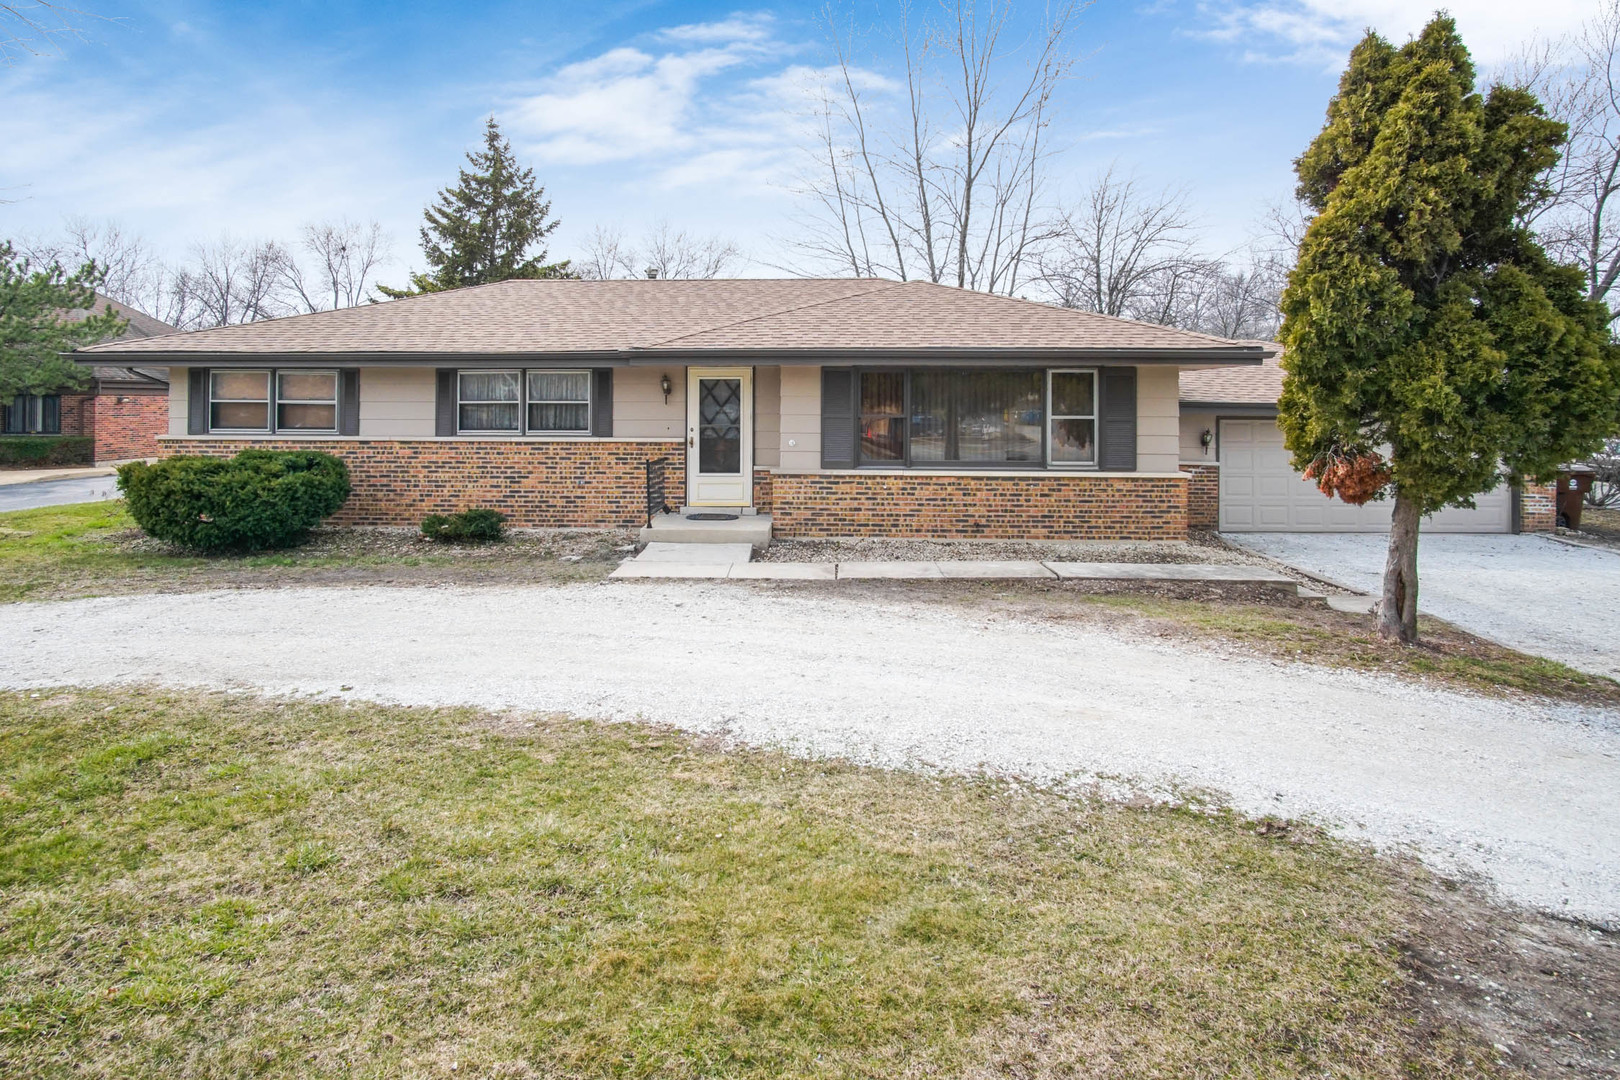 17212 South Harlem Avenue, Tinley Park in Cook County, IL 60477 Home for Sale